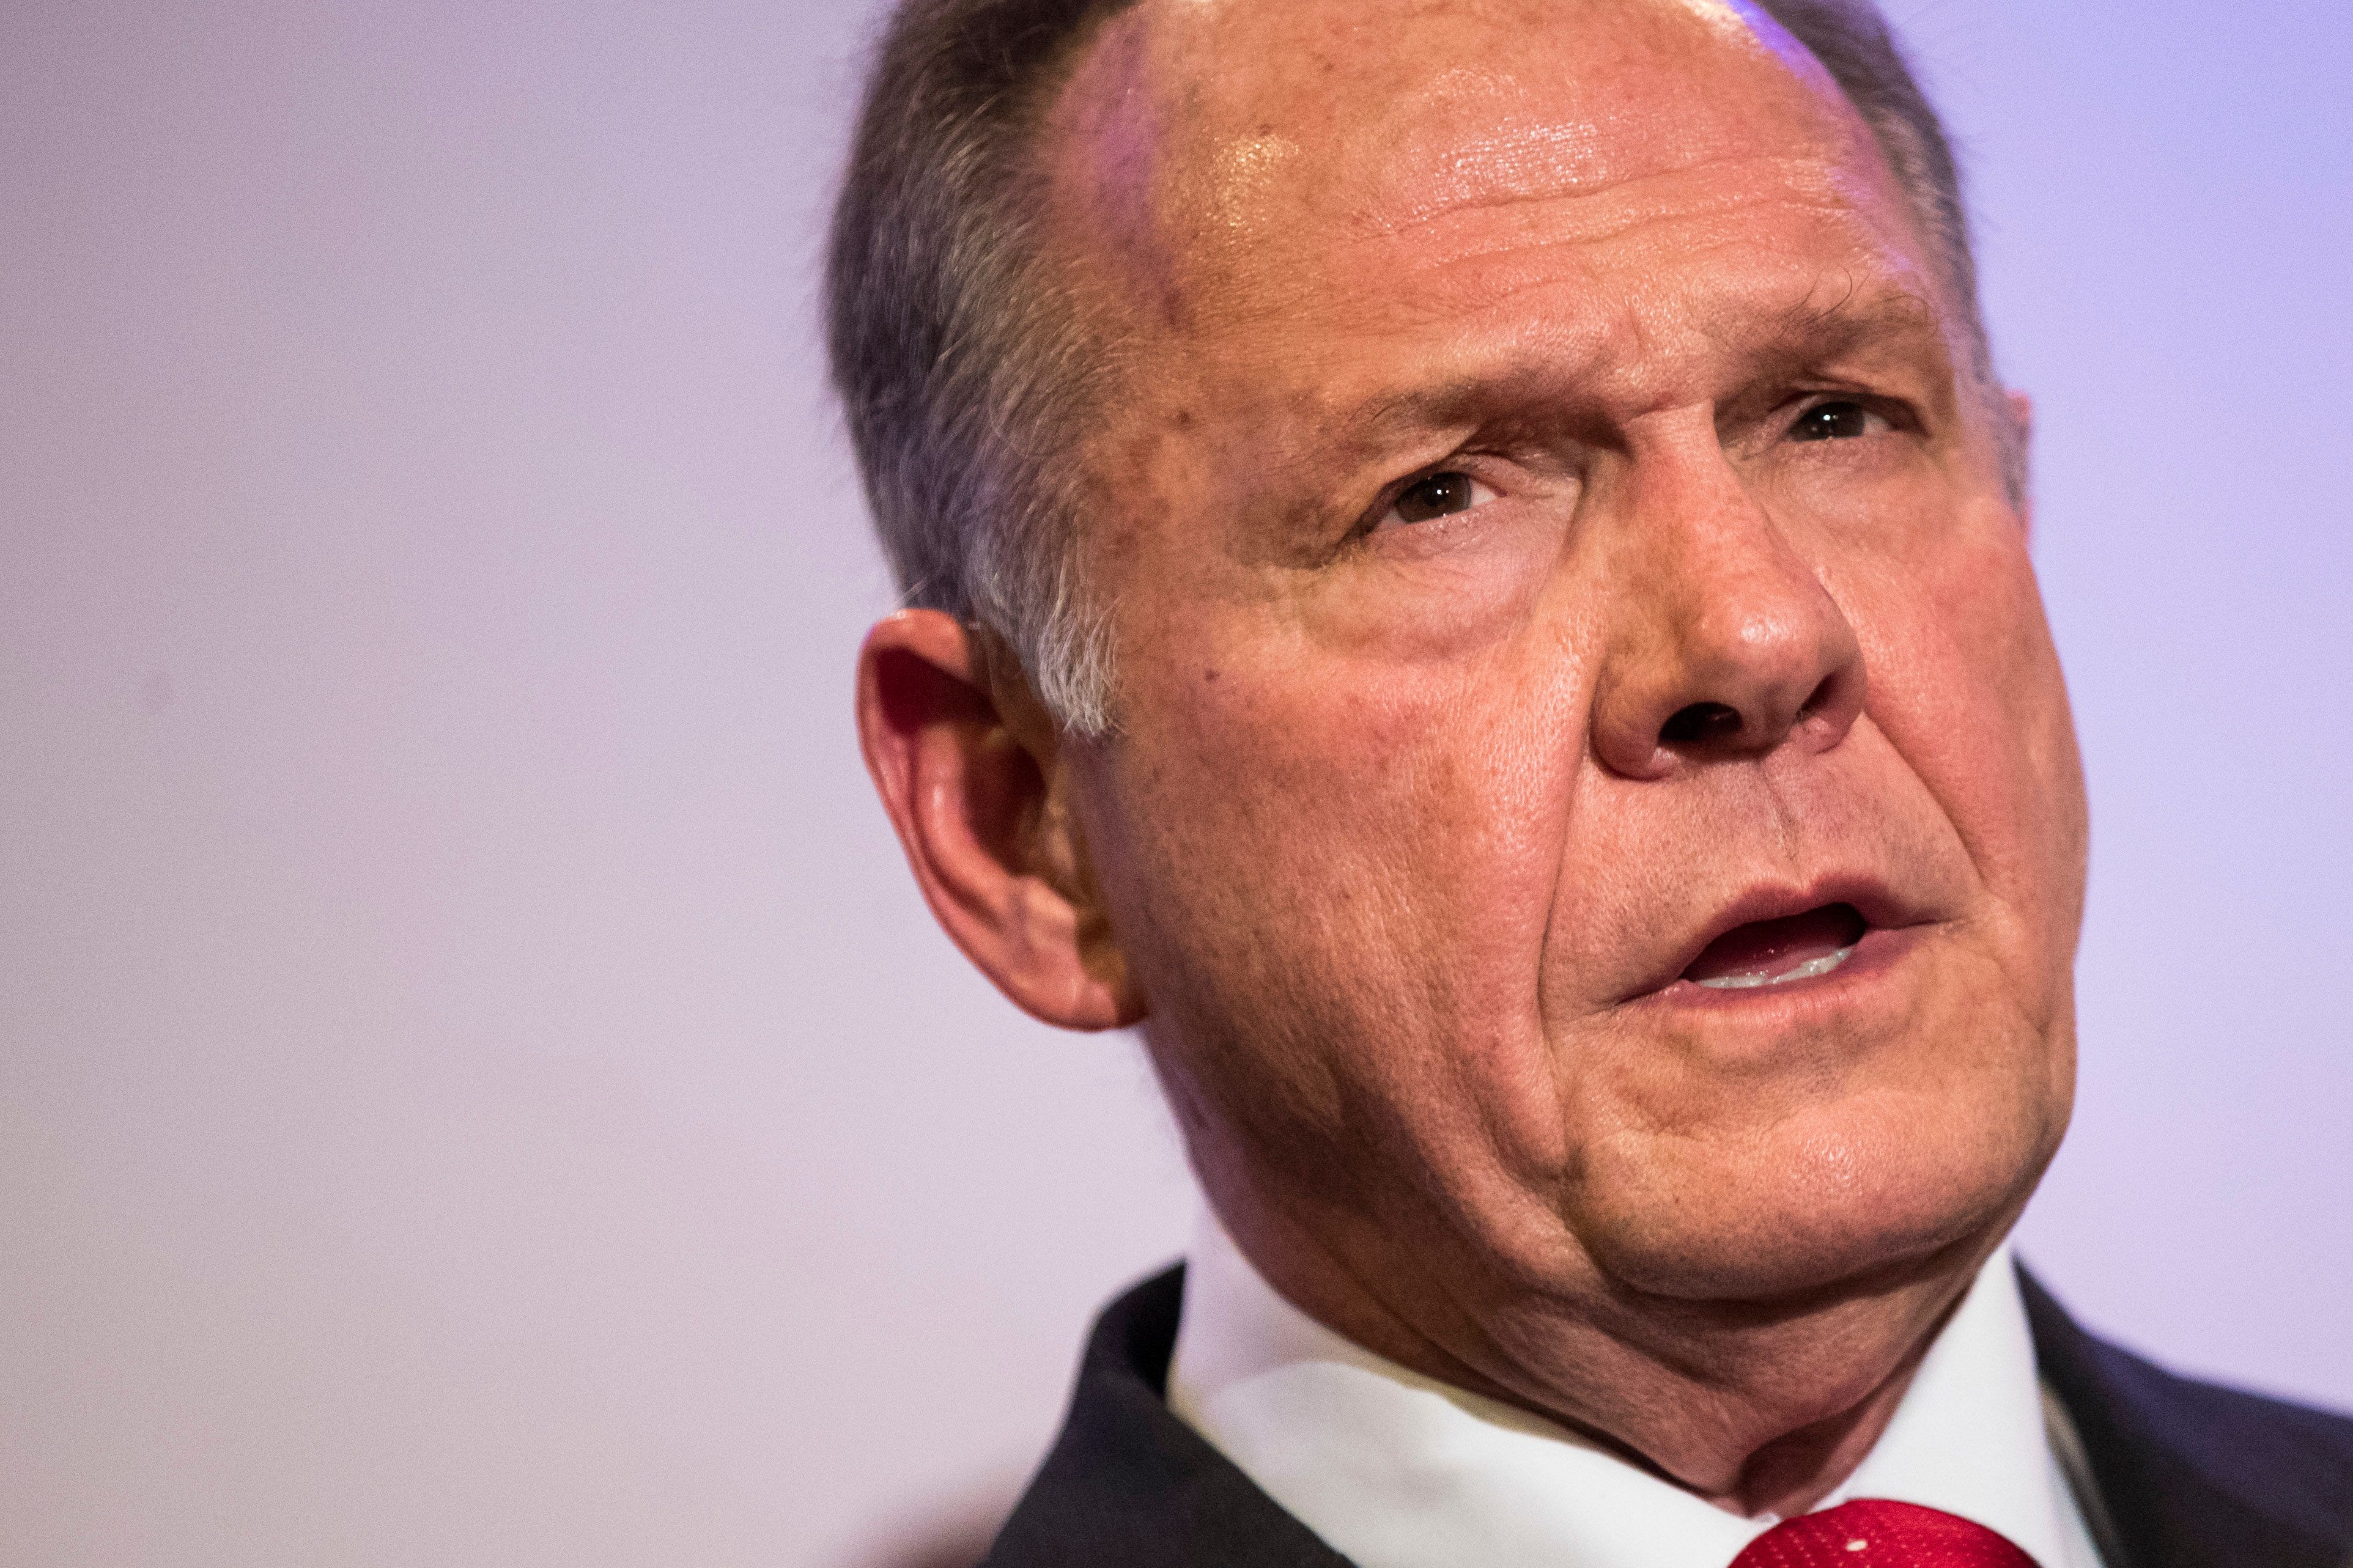 Roy Moore speaks during a news conference on Nov. 16, 2017, in Birmingham, Alabama.